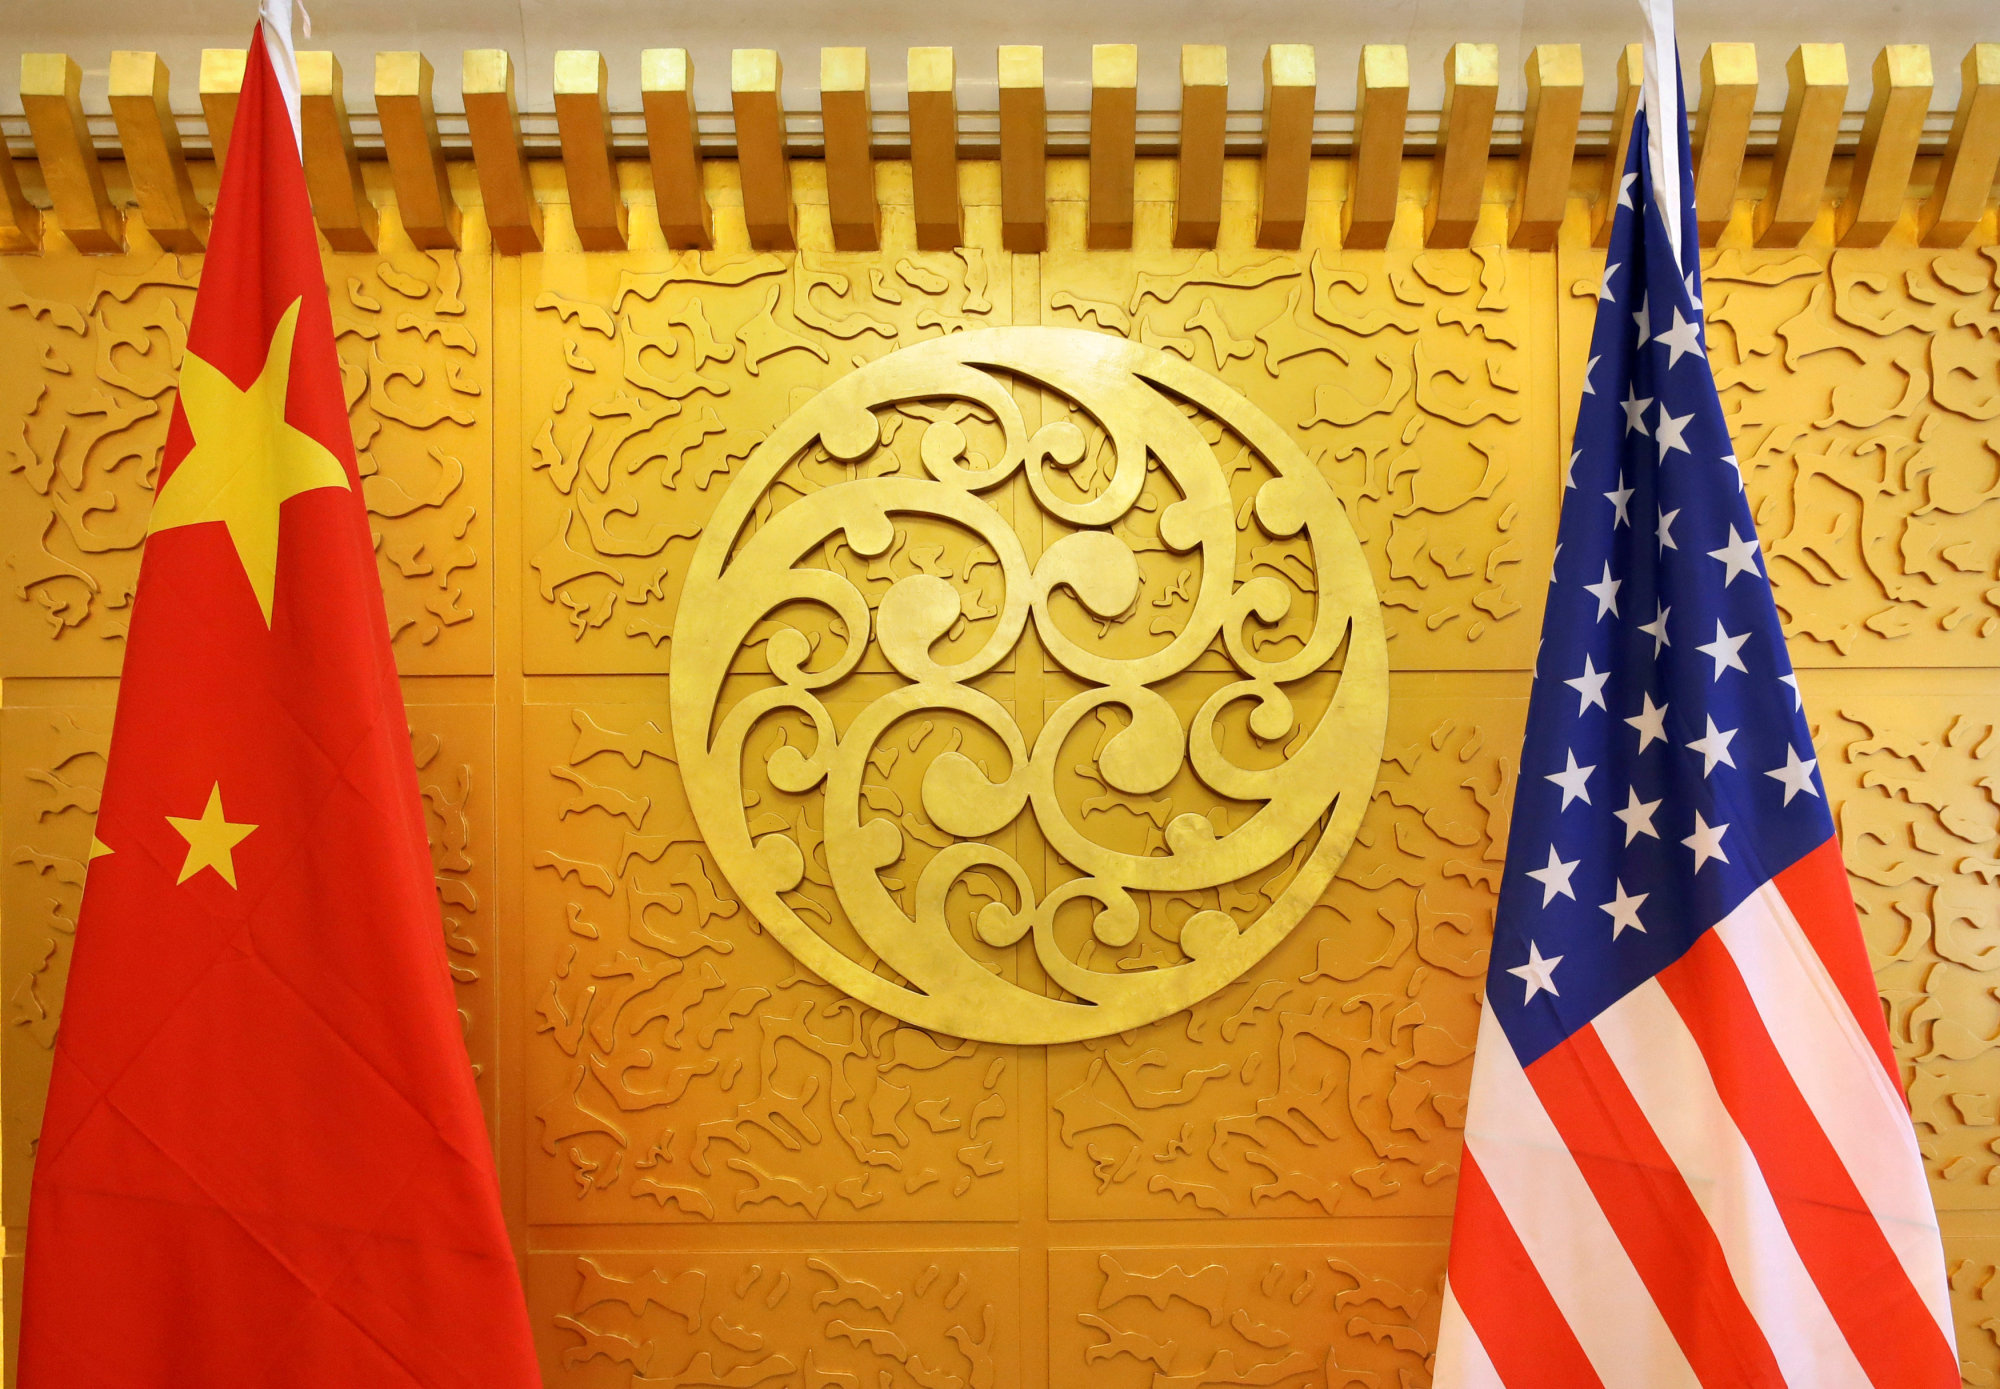 Chinese and U.S. flags are set up for a meeting during a visit by U.S. Secretary of Transportation Elaine Chao at China's Ministry of Transport in Beijing in April 2018. | REUTERS